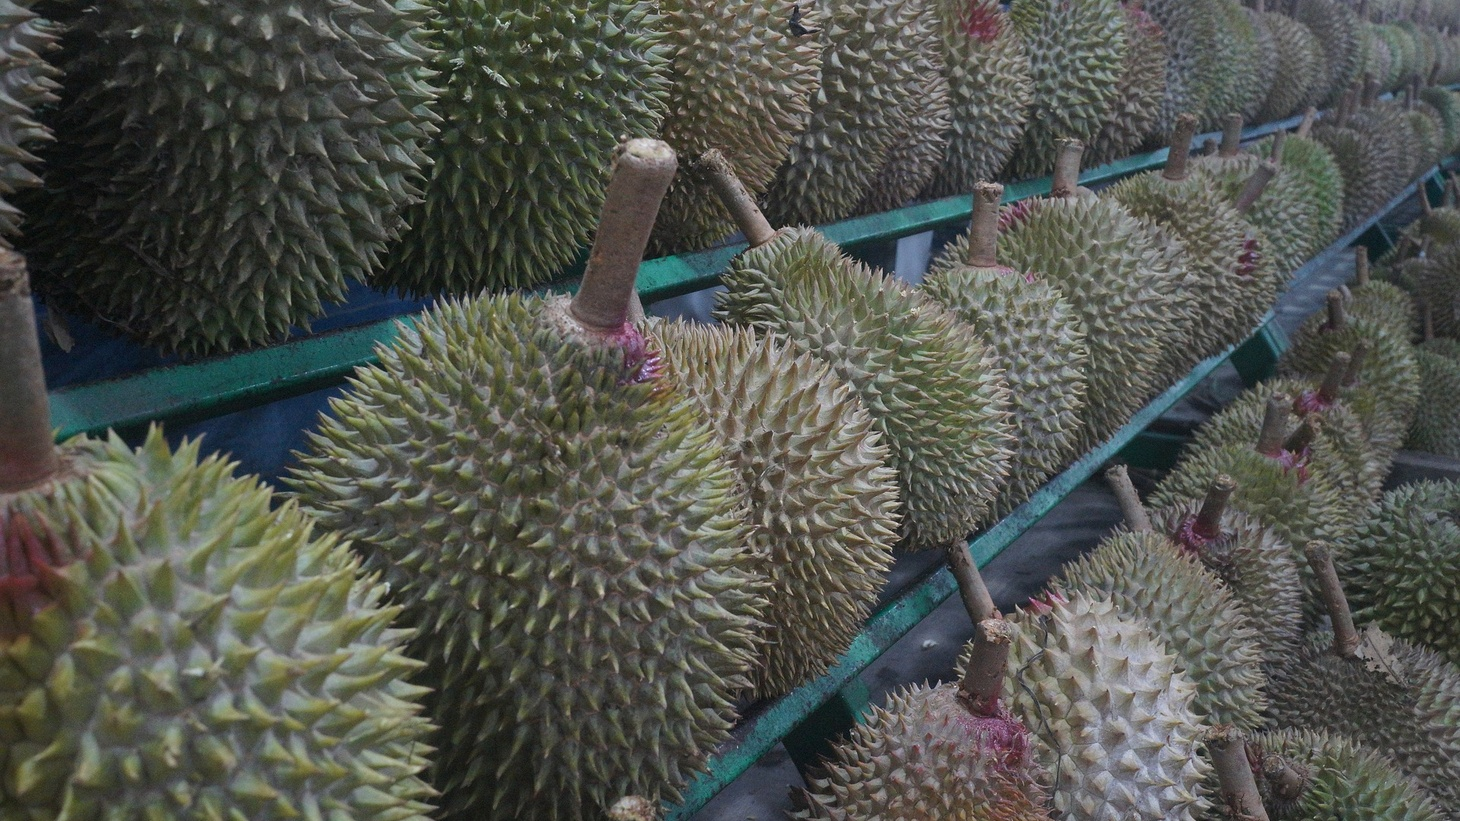 Simultaneously attractive and repellent, durian is eaten by large animals like elephants and orangutans but is a polarizing fruit among humans.